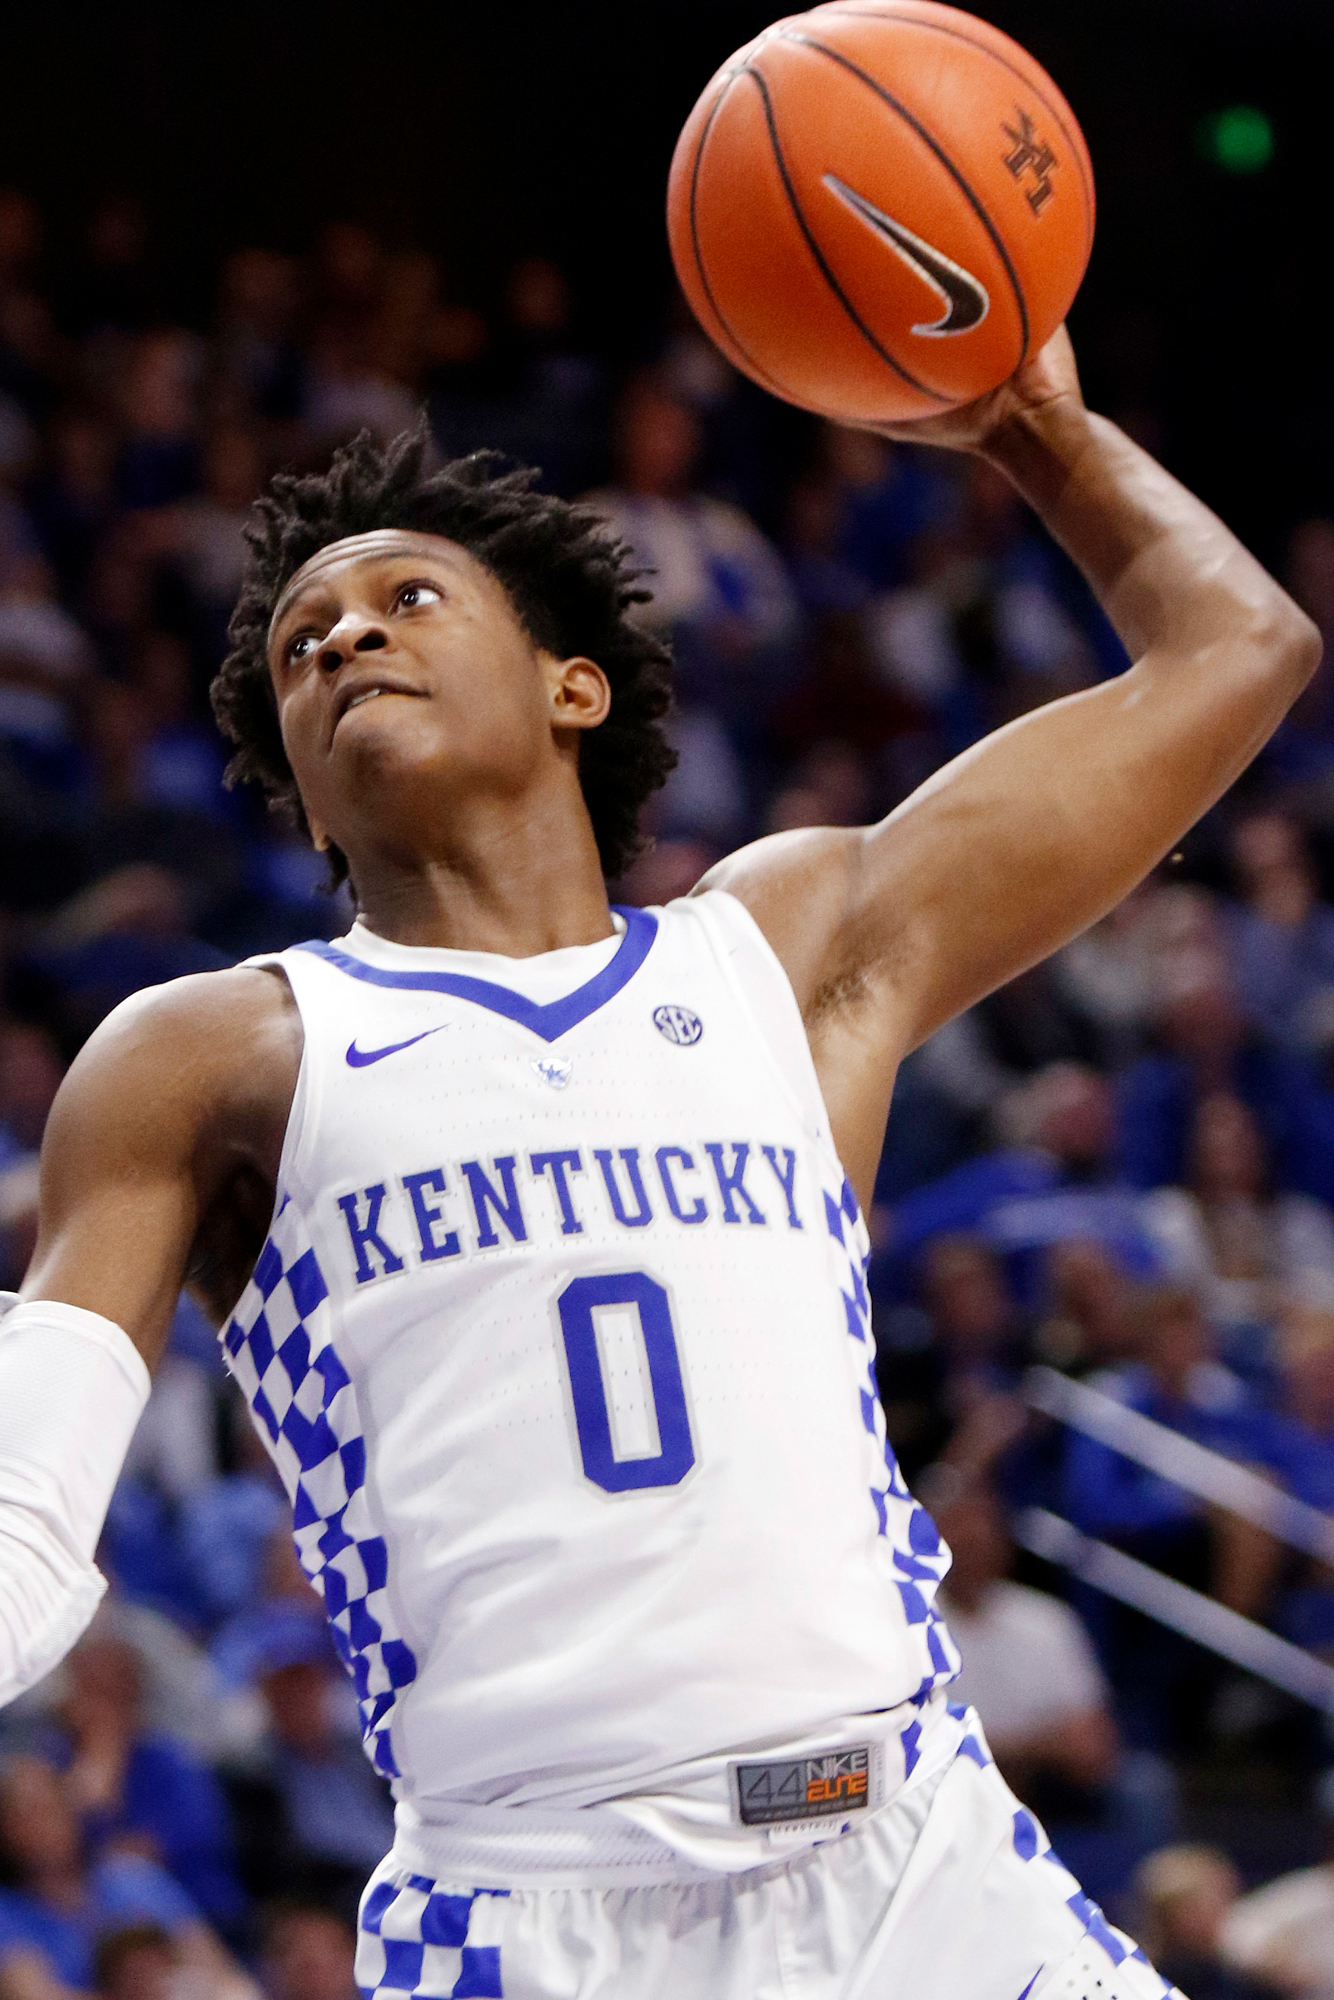 Kentucky's De'Aaron Fox goes up for a dunk during the second half of an NCAA college basketball exhibition game against Asbury, Sunday, Nov. 6, 2016, in Lexington, Ky.